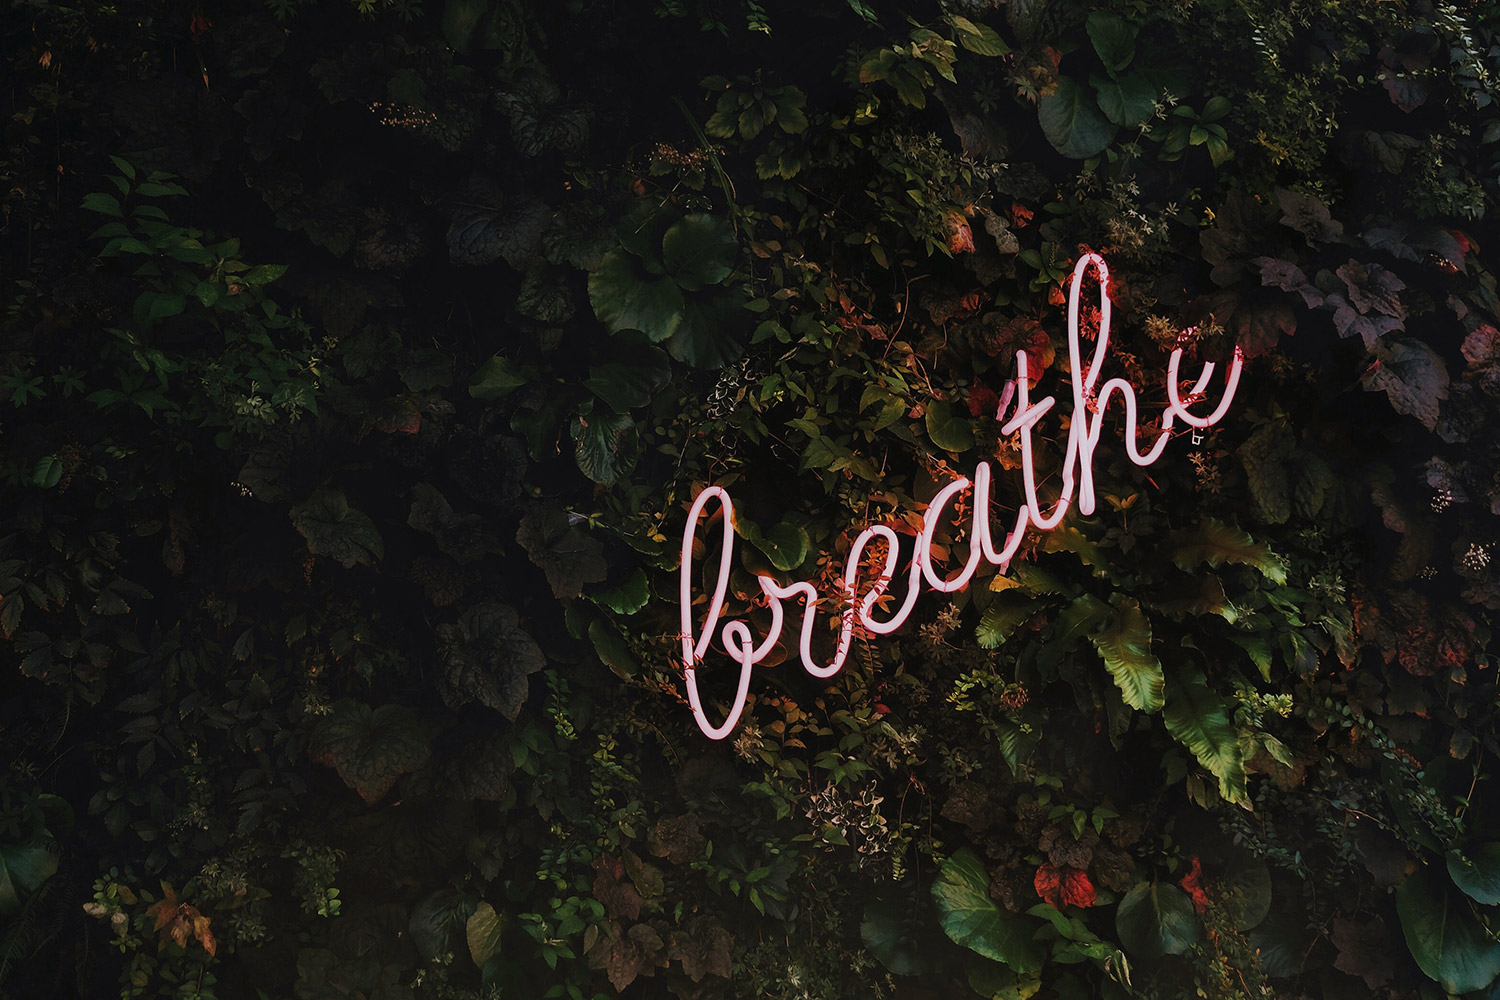 Breathe neon letters on bush for mindfulness and wellbeing in Gloucestershire